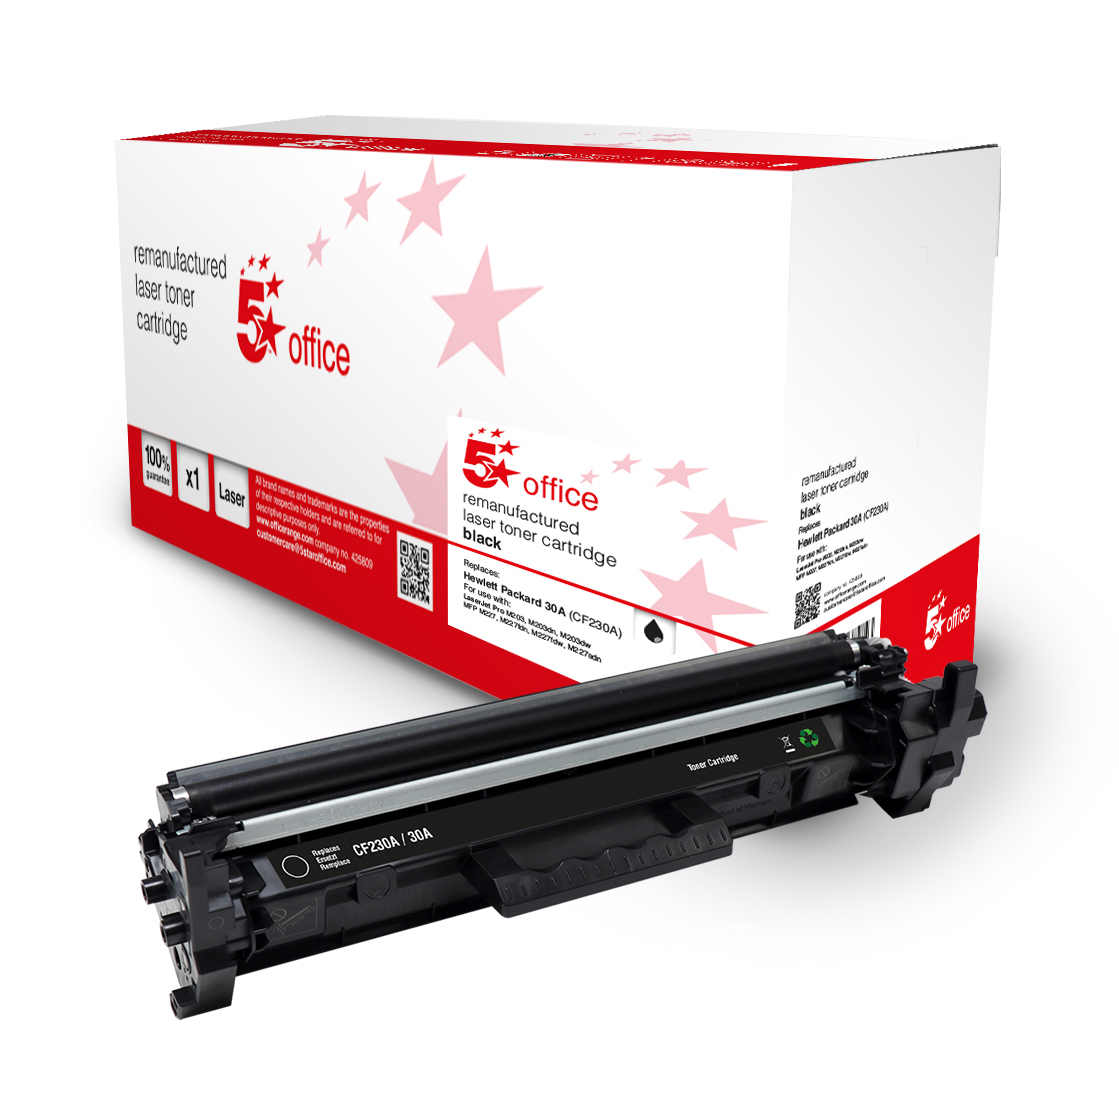 Laser Toner Cartridges 5 Star Office Remanufactured Toner Cartridge Page Life Black 1600pp HP 30A CF230A Alternative